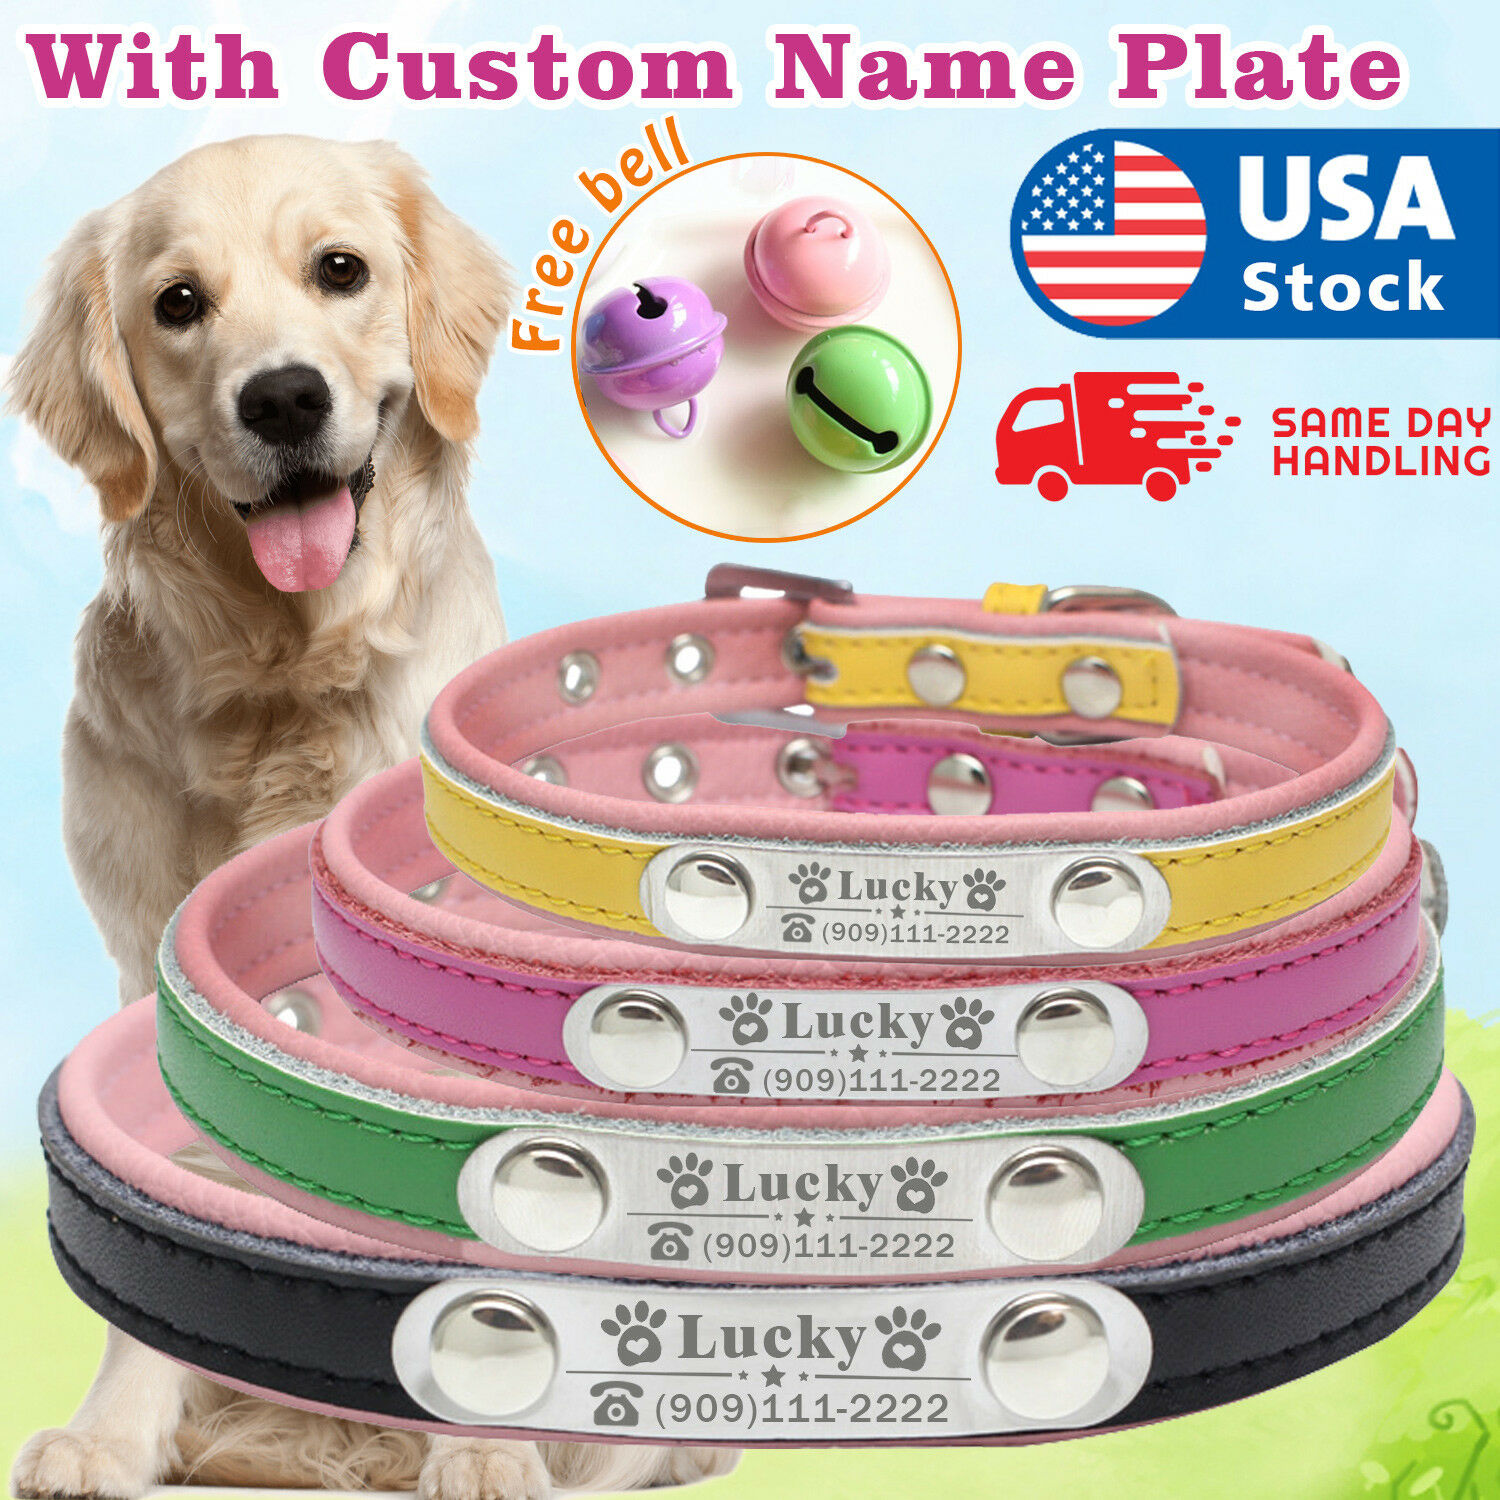 dog collar leather personalized with name plate Custom dog tags engraved ID tag Collars